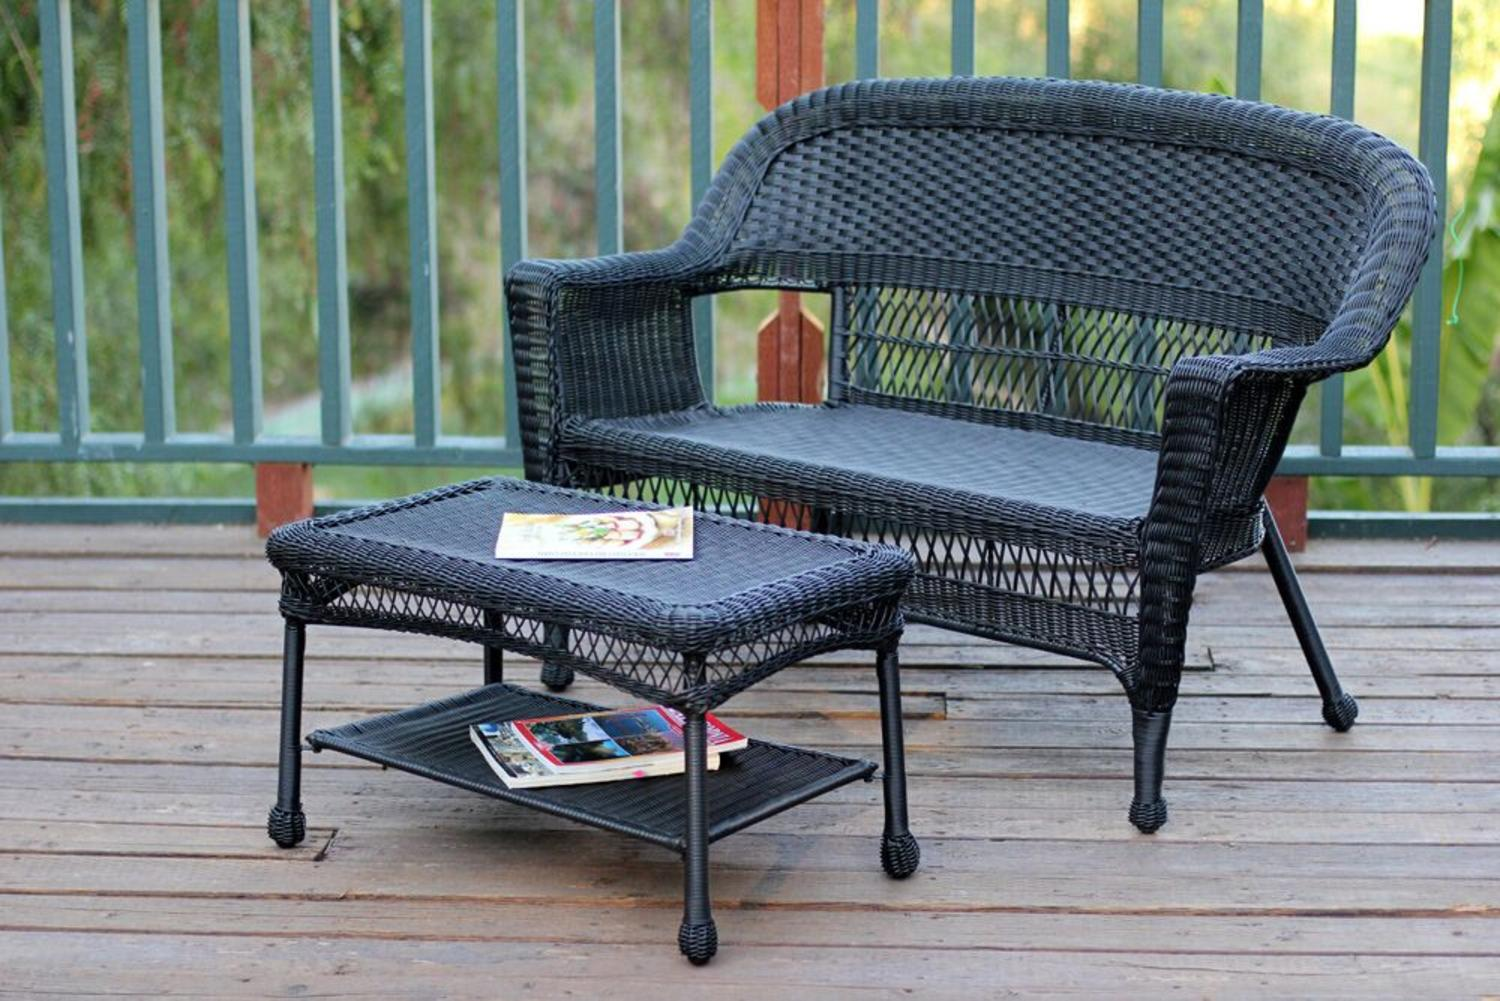 2 Piece Oswald Black Resin Wicker Patio Loveseat And Coffee Table Set